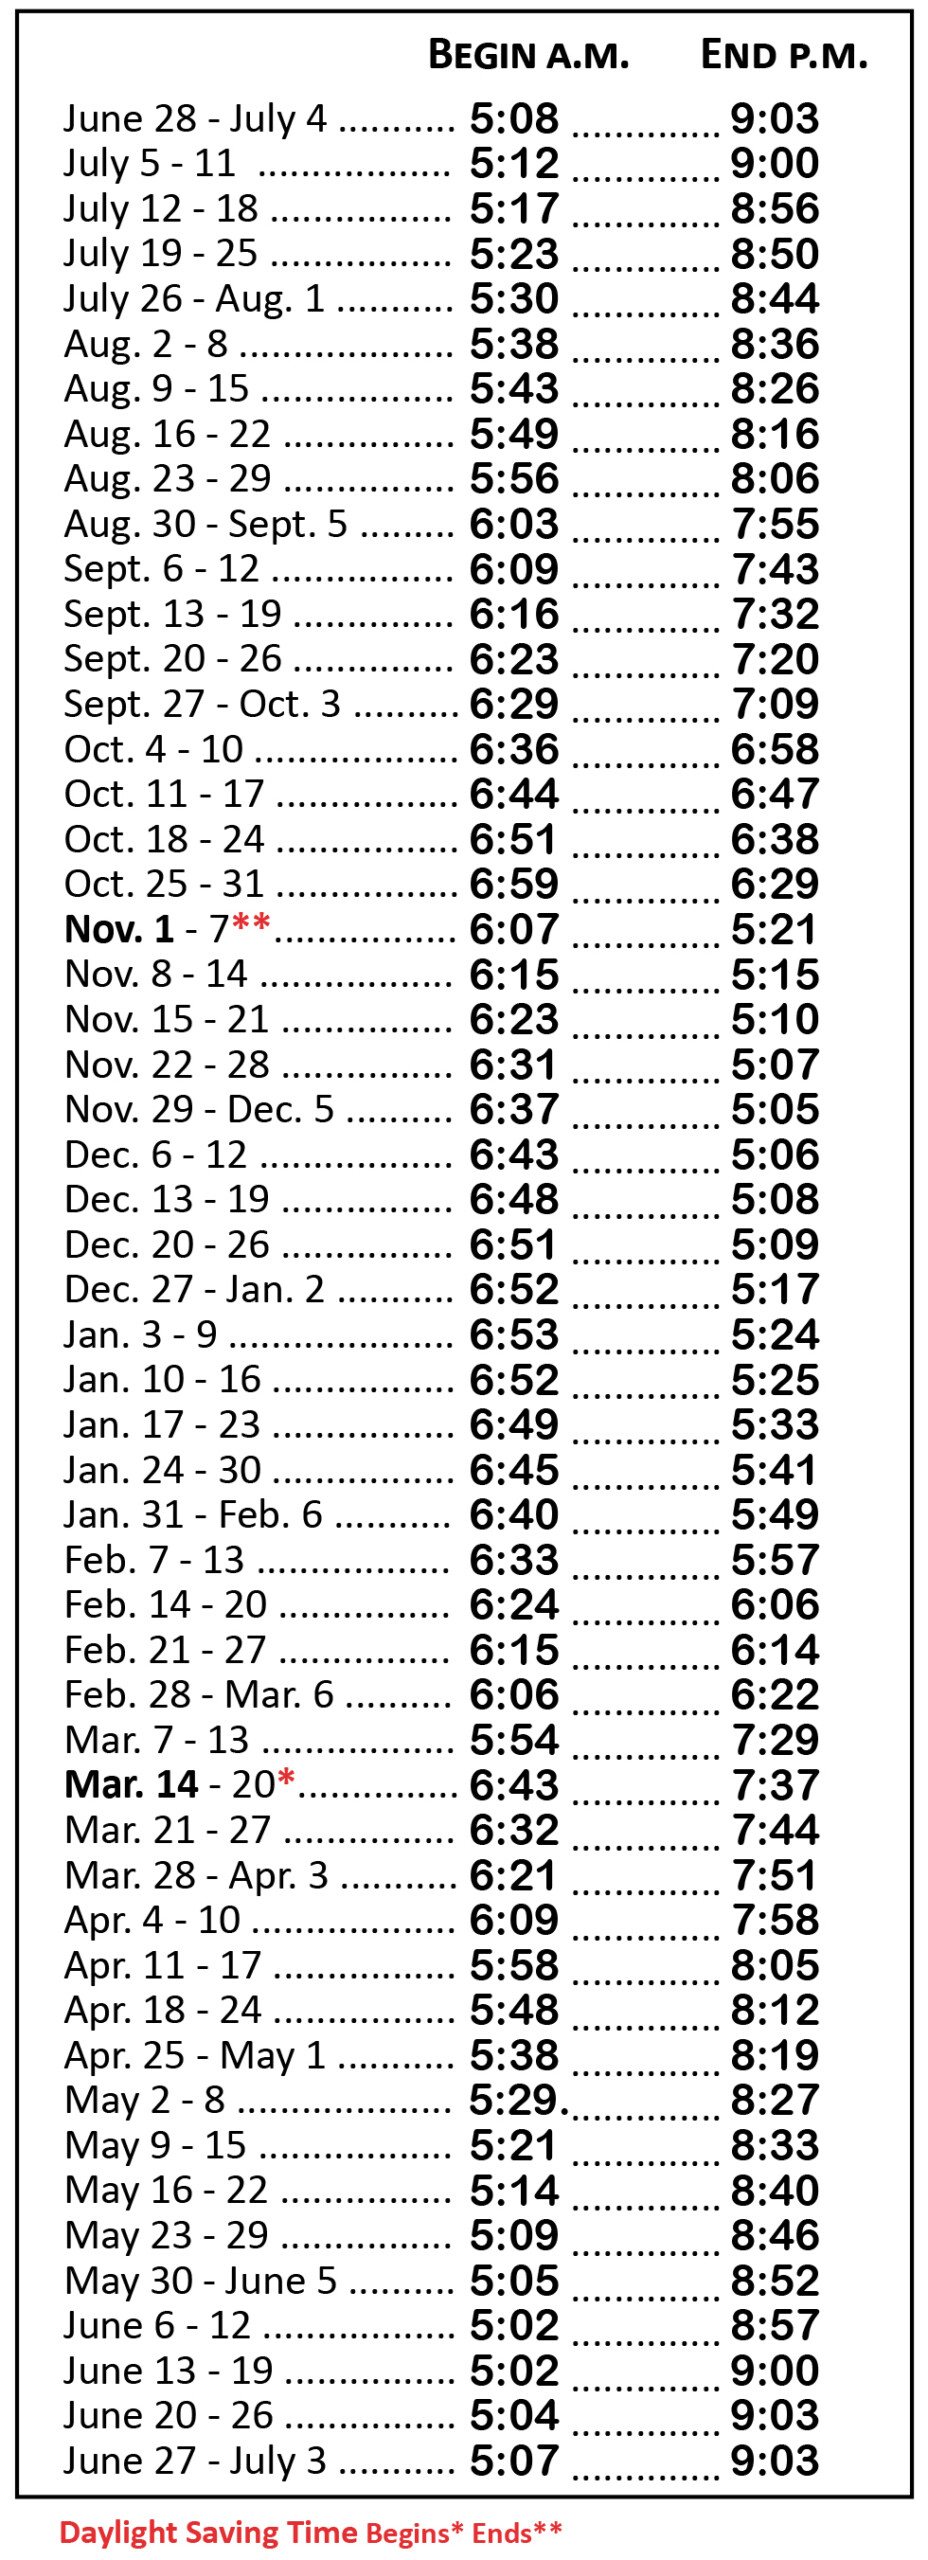 2020-21 Hunting Hours Table